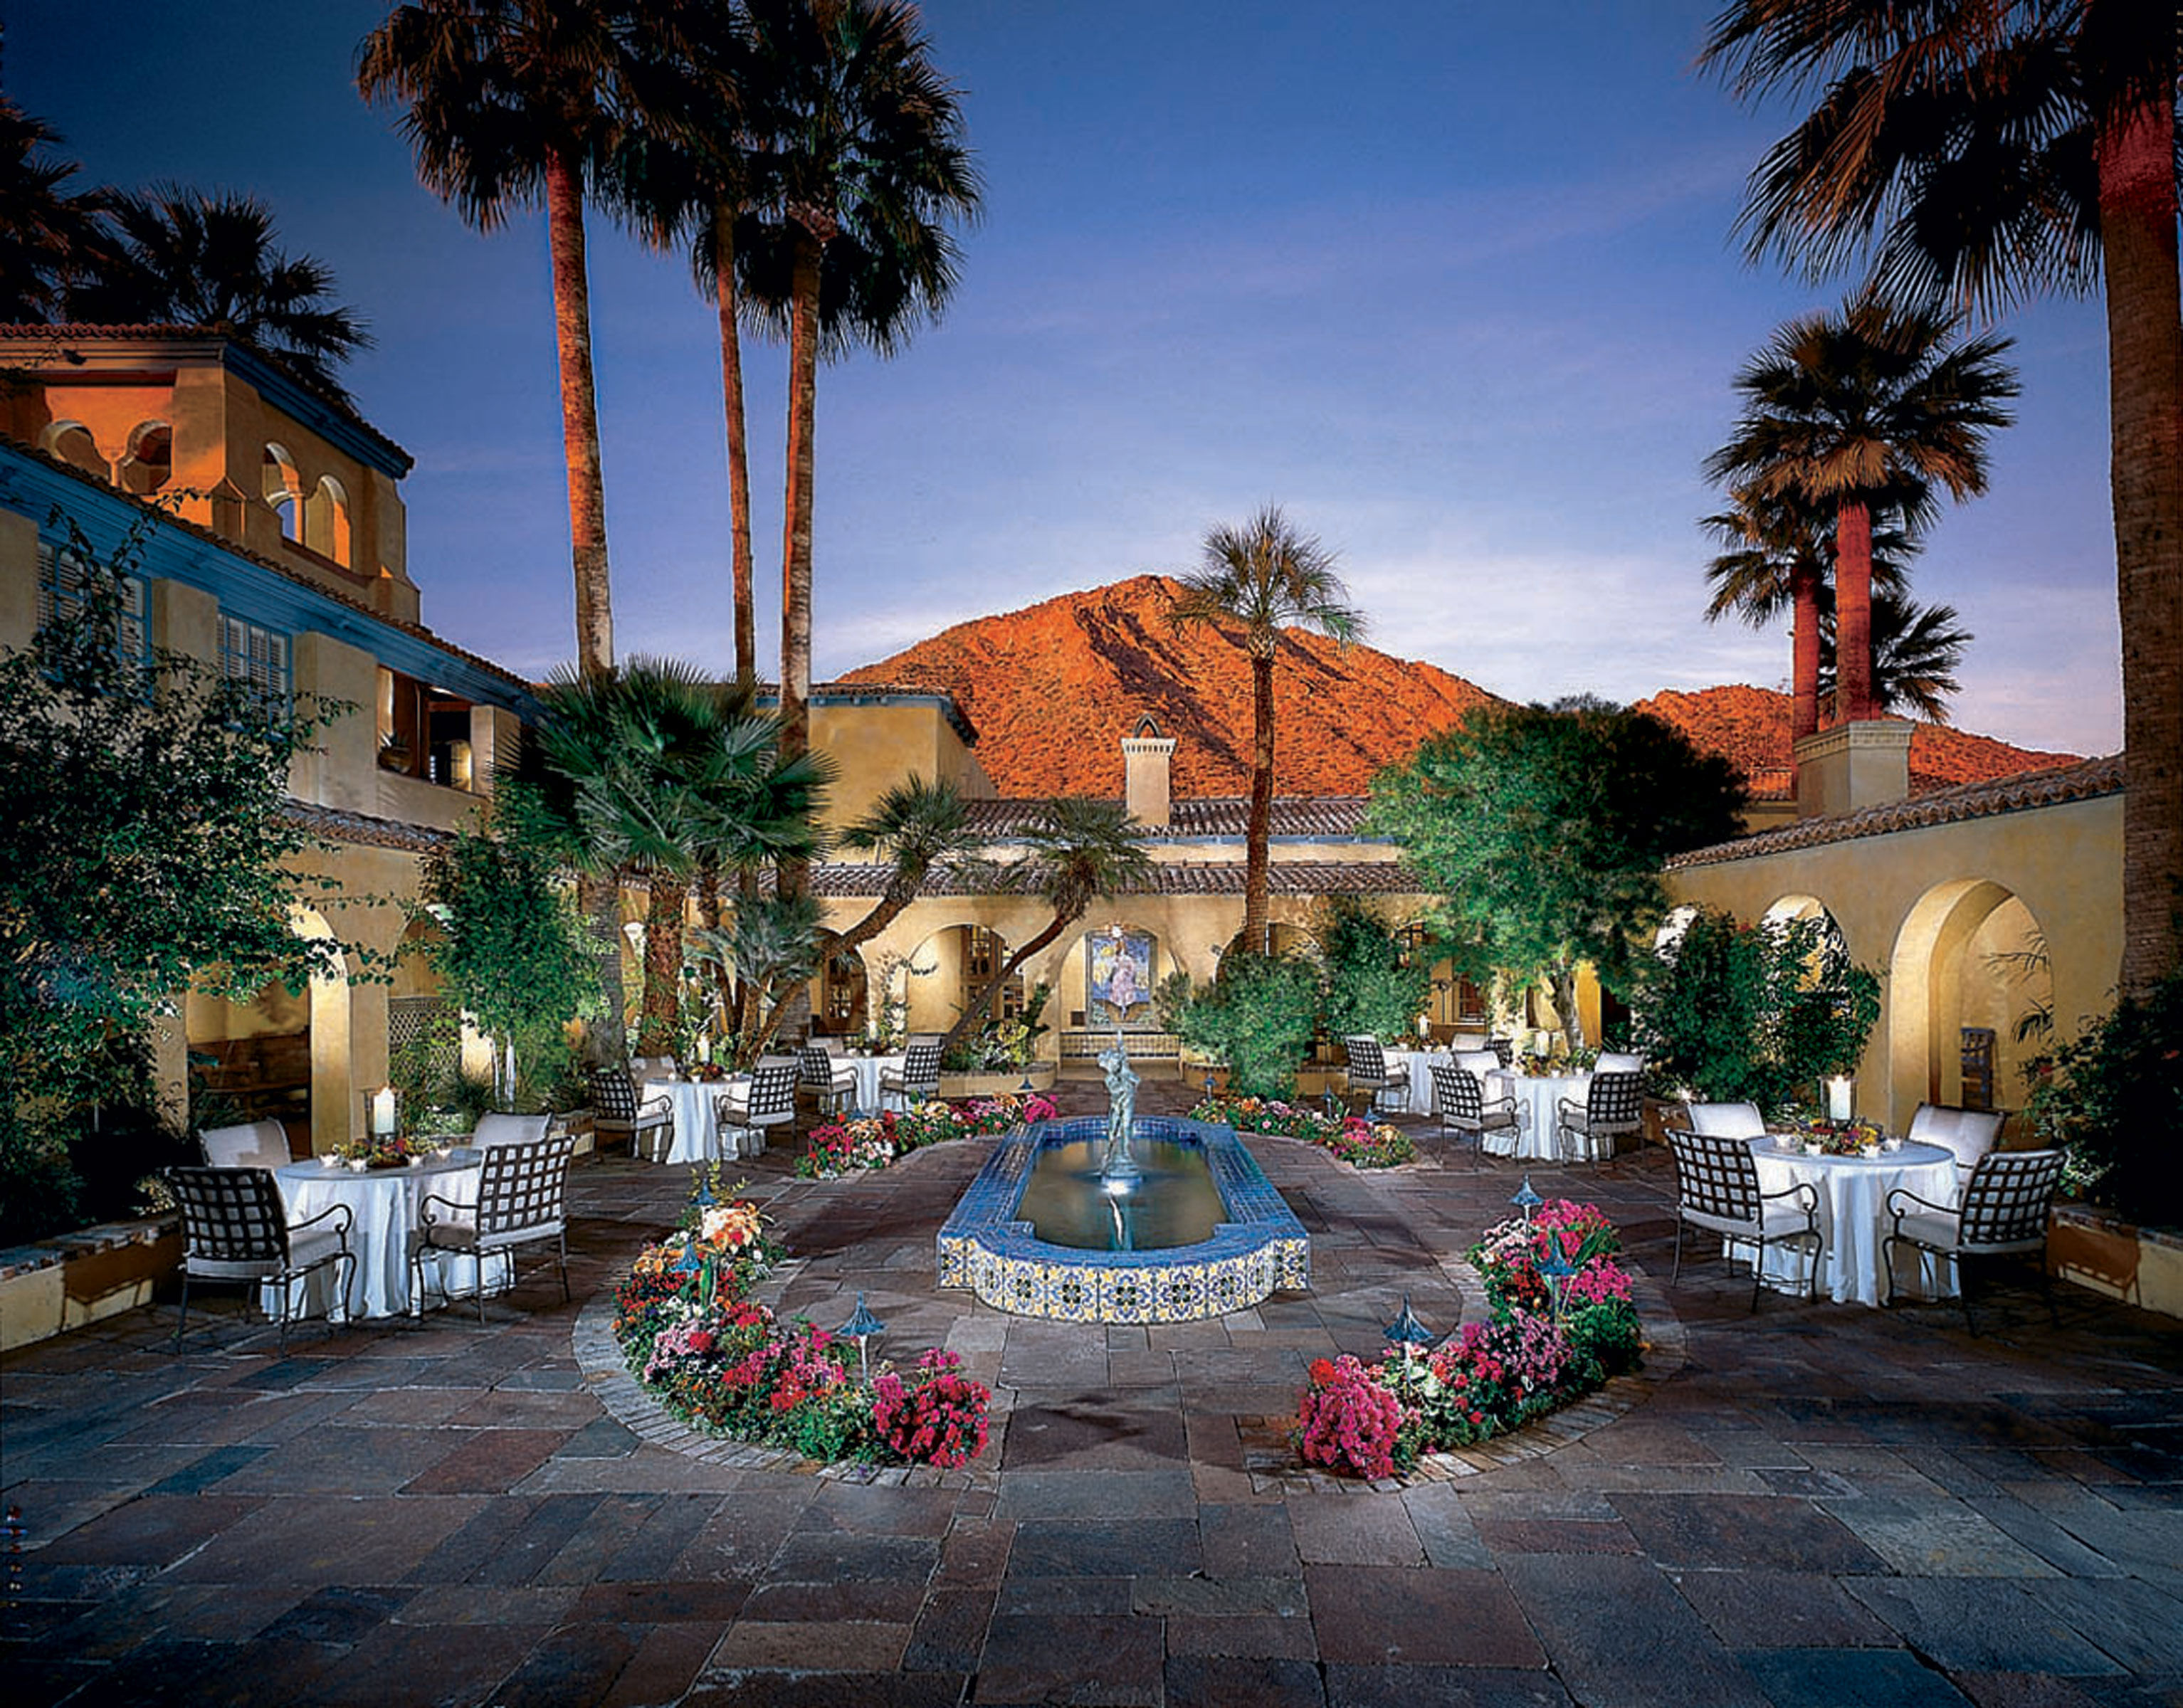 hotel royal palms resort & spa phoenix, az 5* (united states